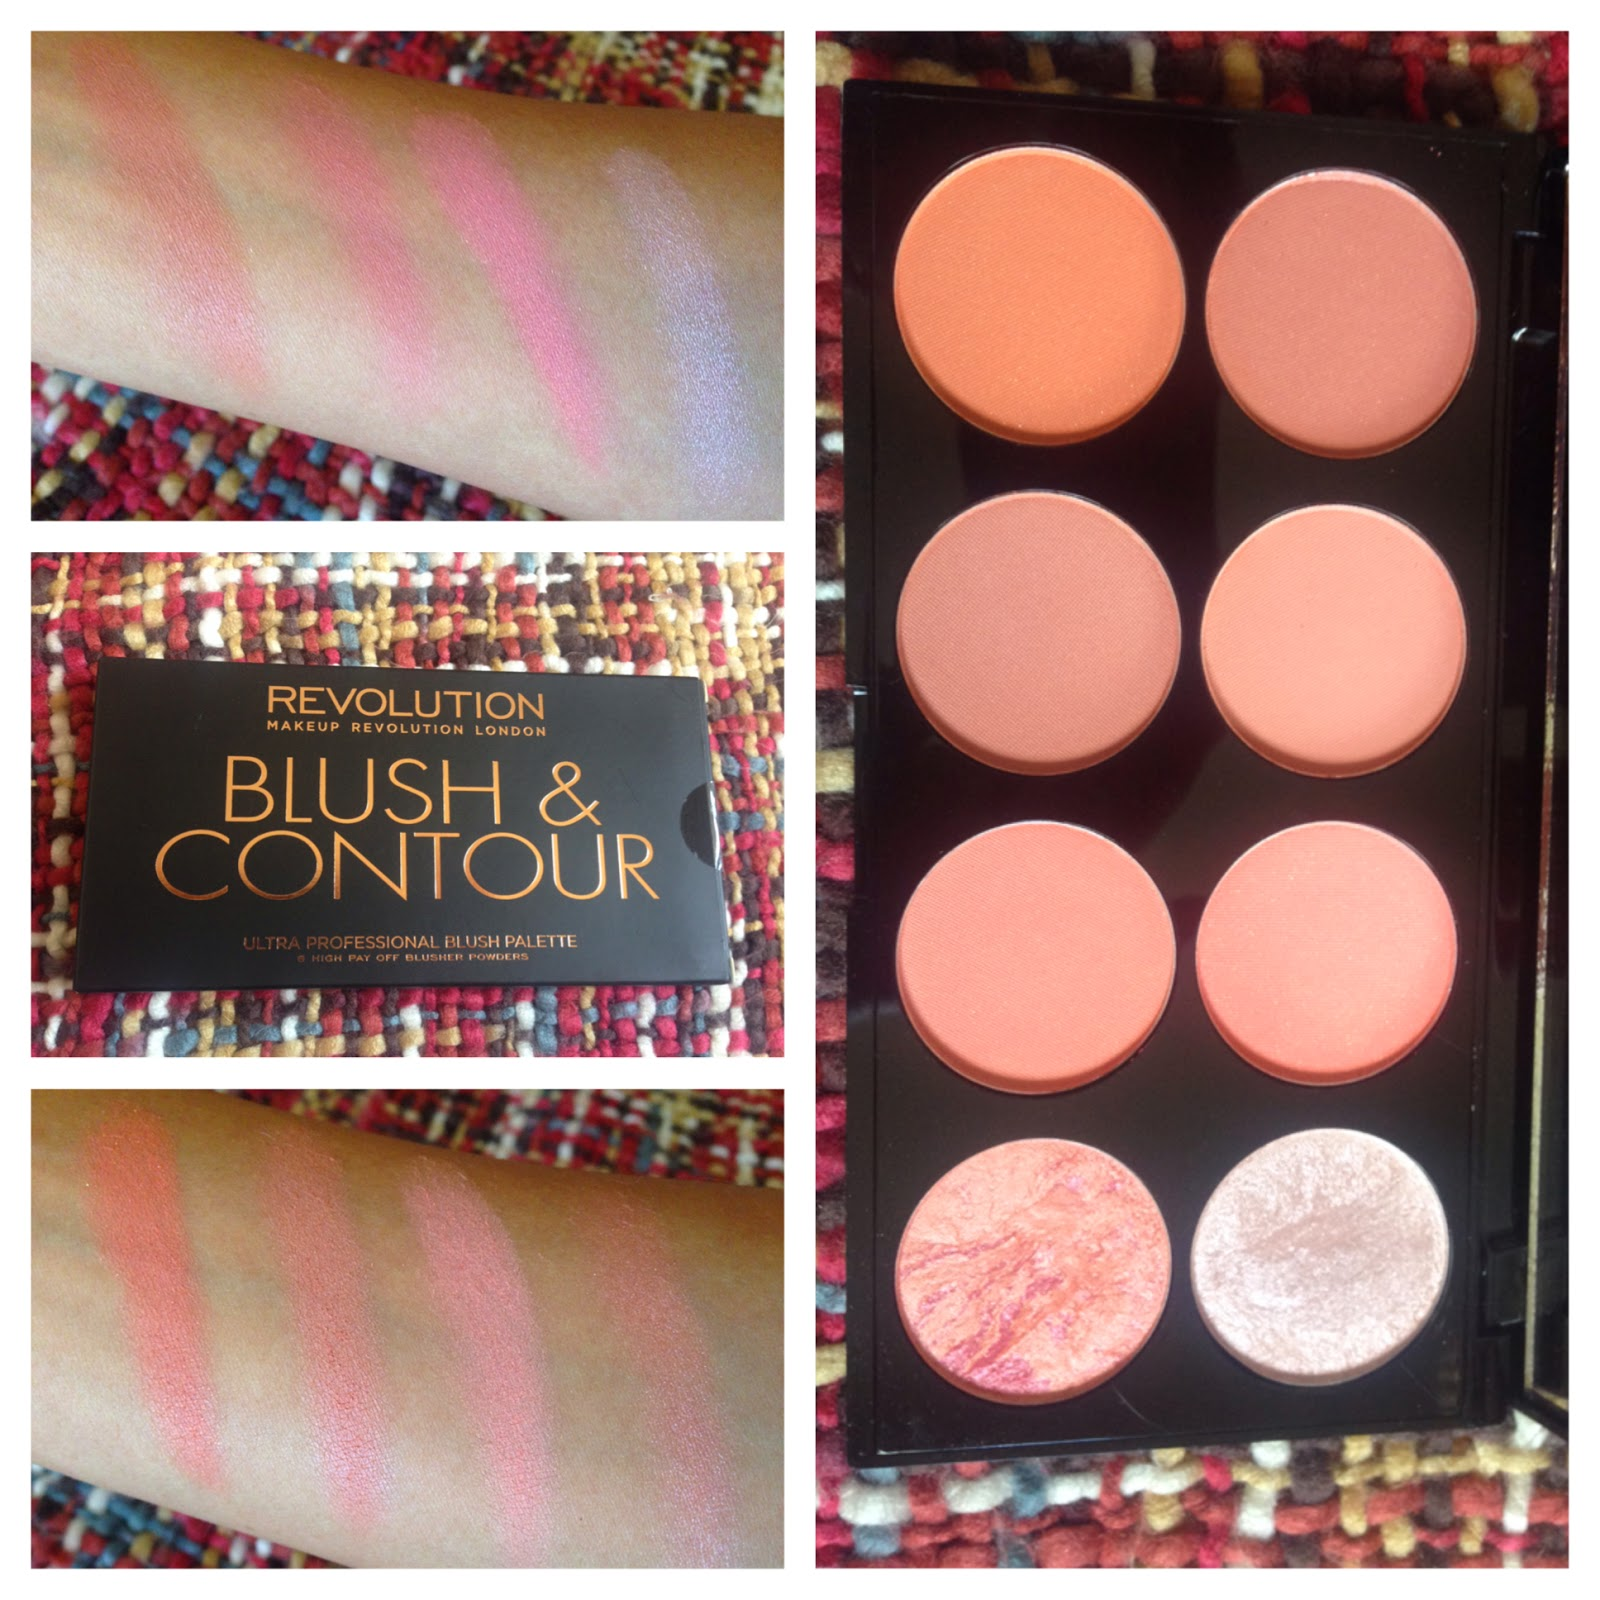 Makeup Revolution Ultra Blush and Contour Palette in Hot Spice Review